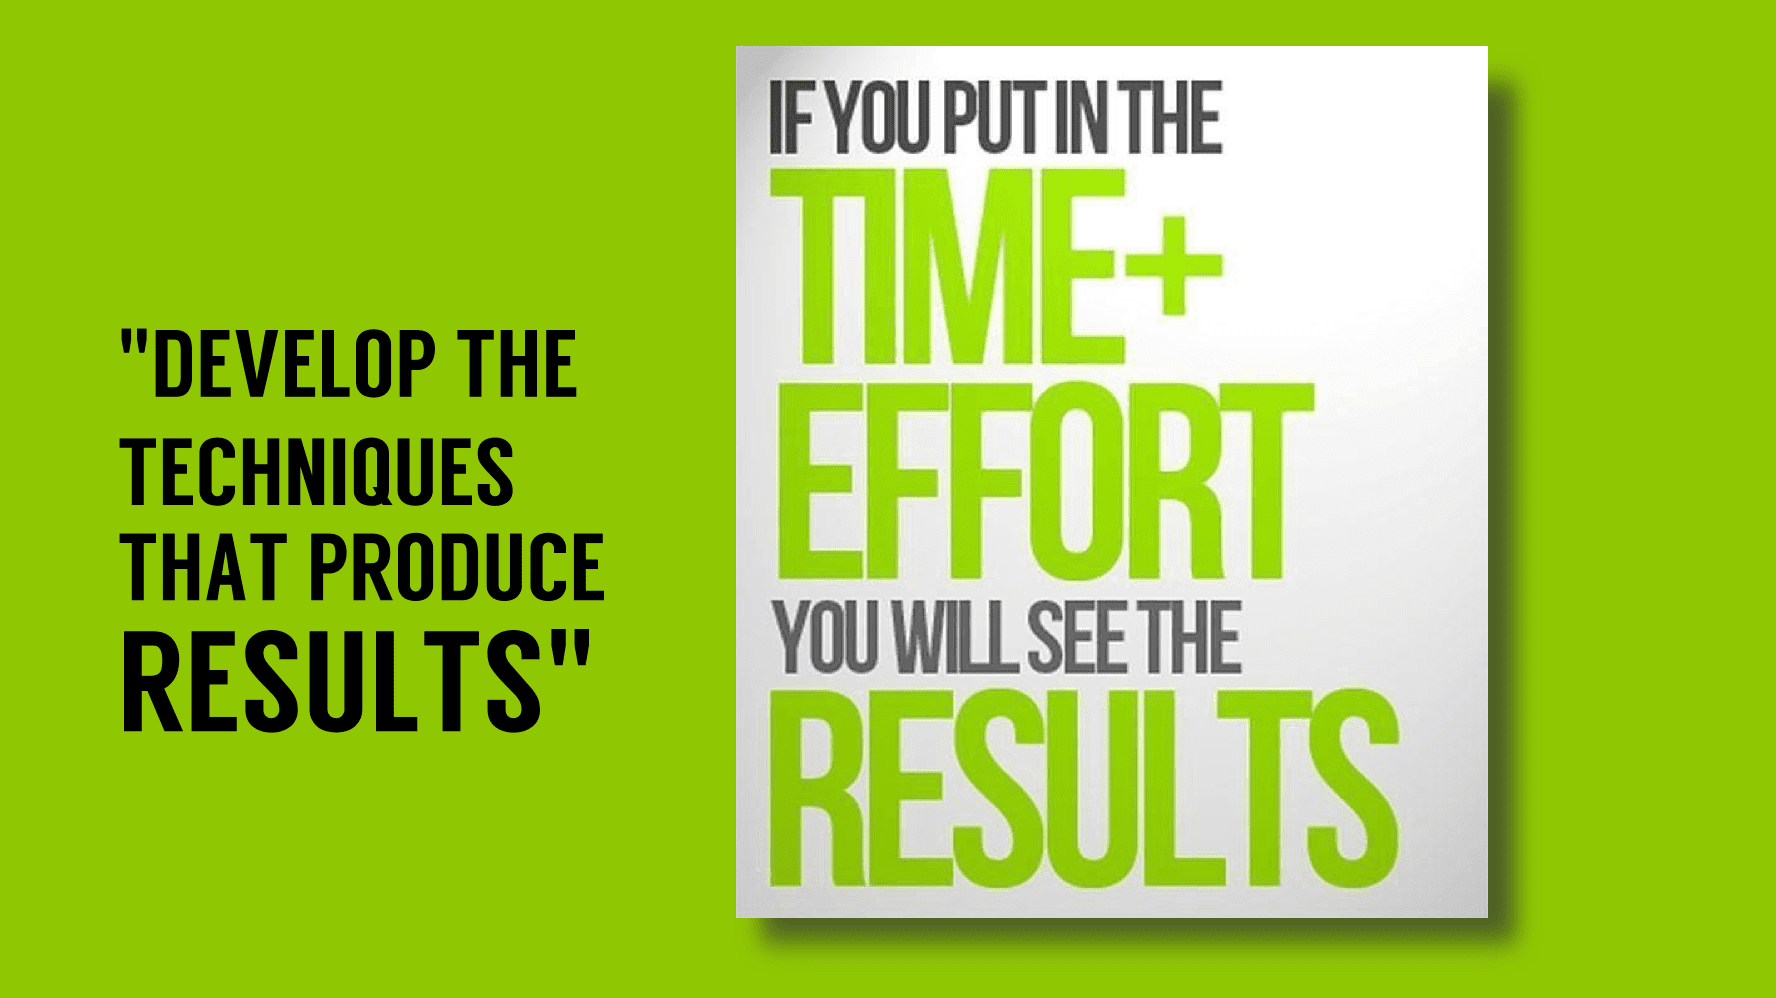 ThriveOnline Time and Efforts produce Results